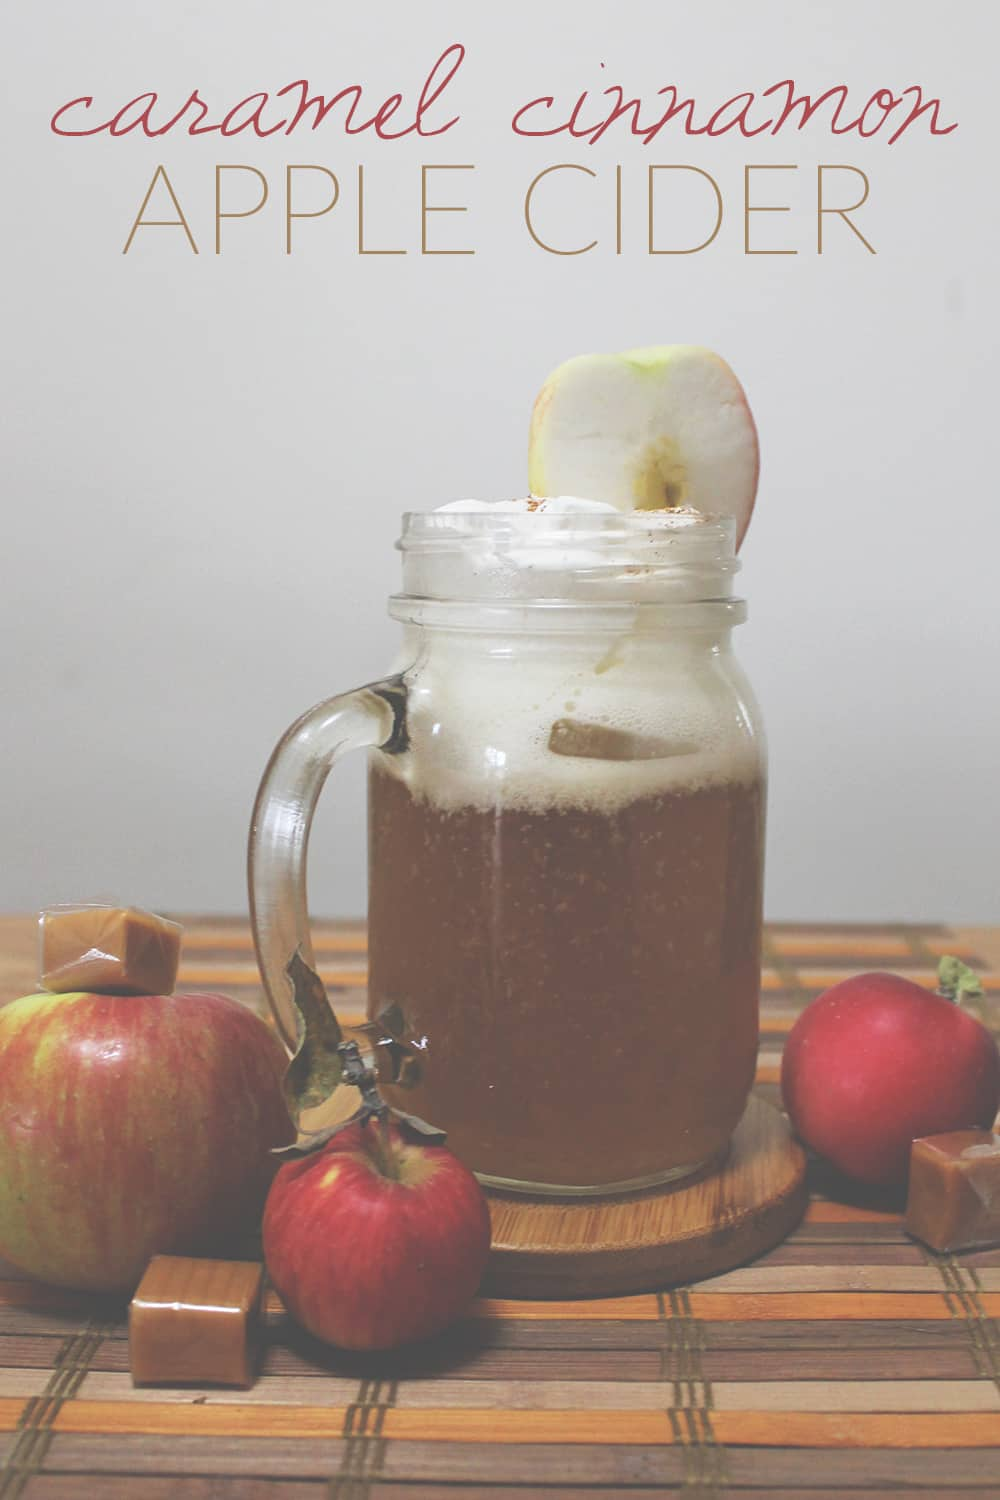 Easy Caramel Cinnamon Apple Cider